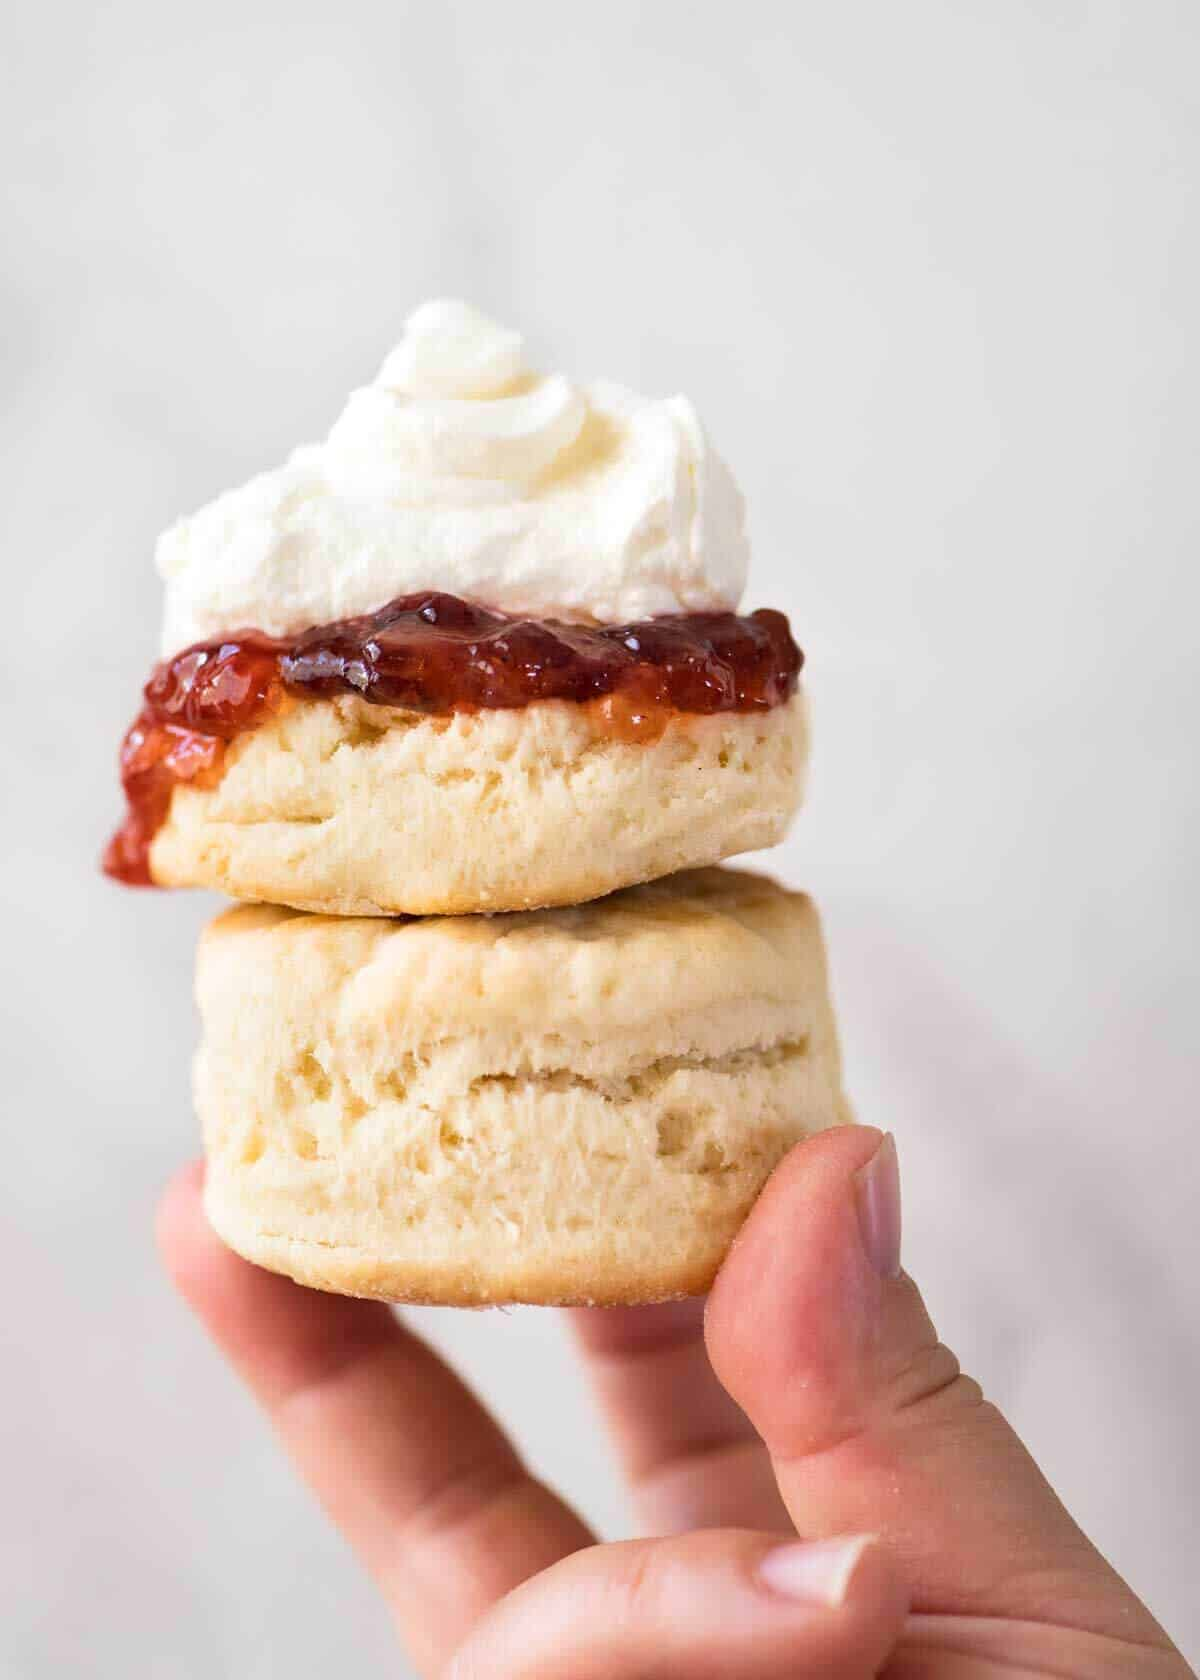 biscuits WITH JAM & CREAM - PLAIN BISCUIT, STRAWBERRY JAM, WHIPPED CREAM.